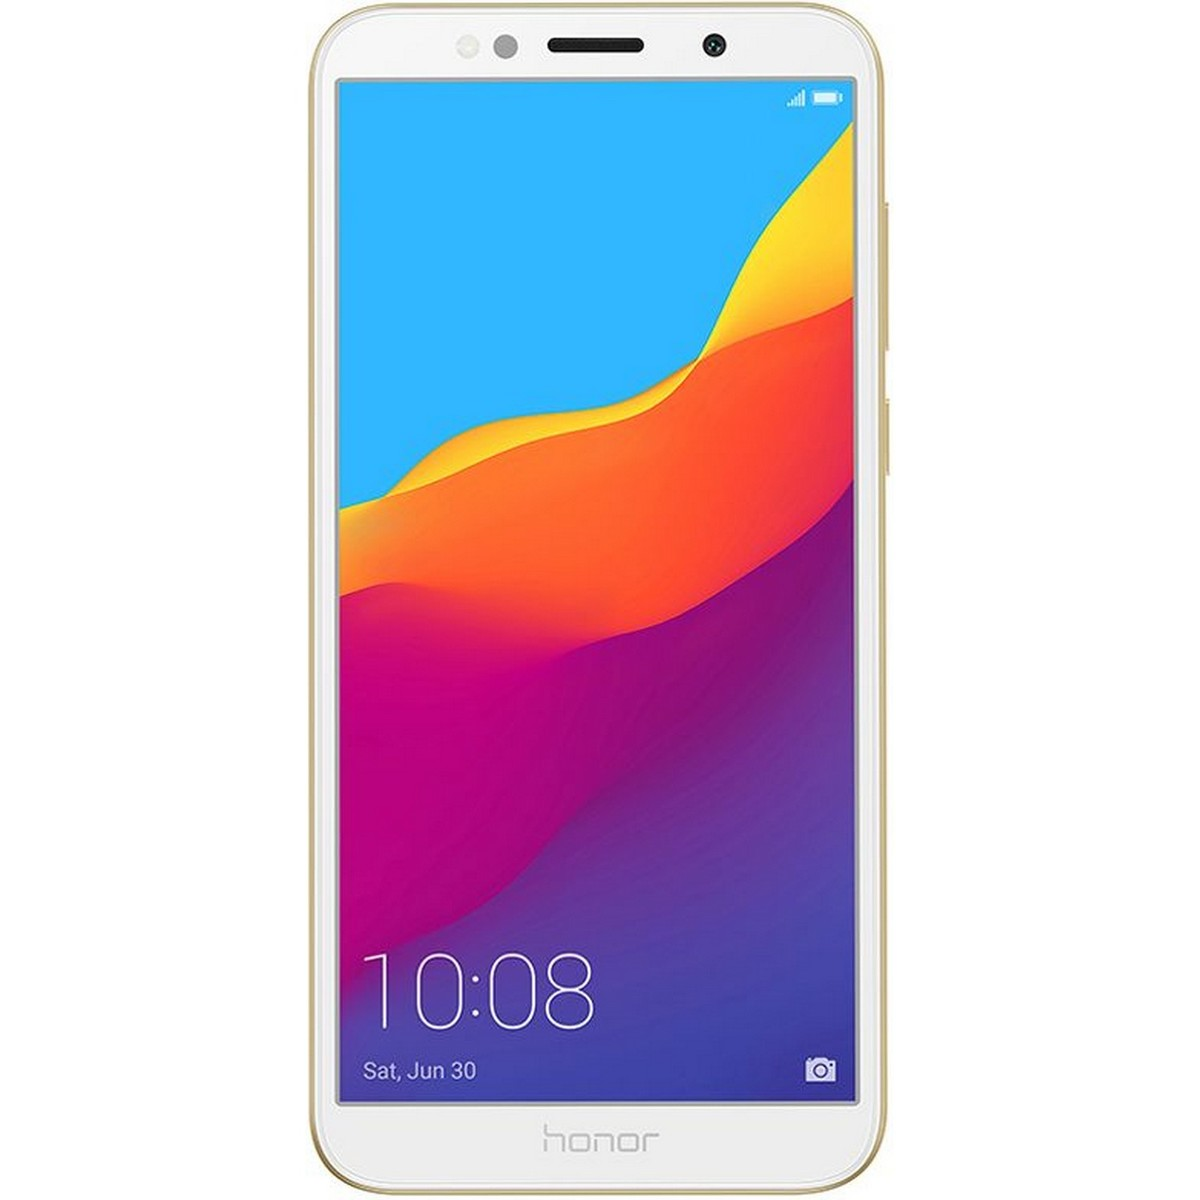 Buy Honor products online in Bahrain - Manama, Riffa, Muharraq and more}